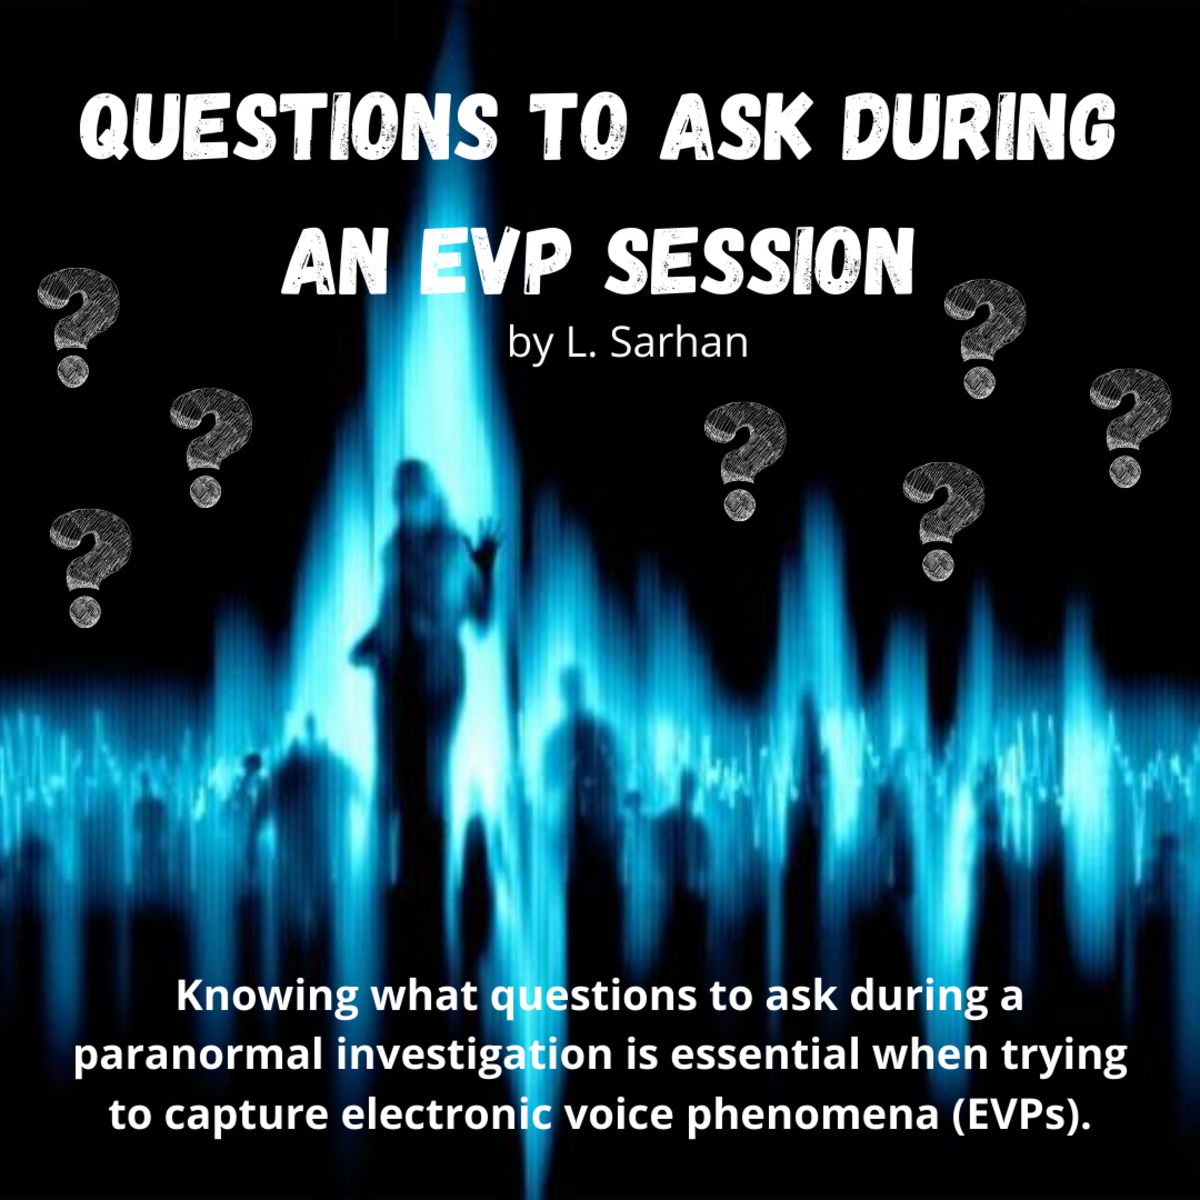 Questions to Ask During an EVP Session